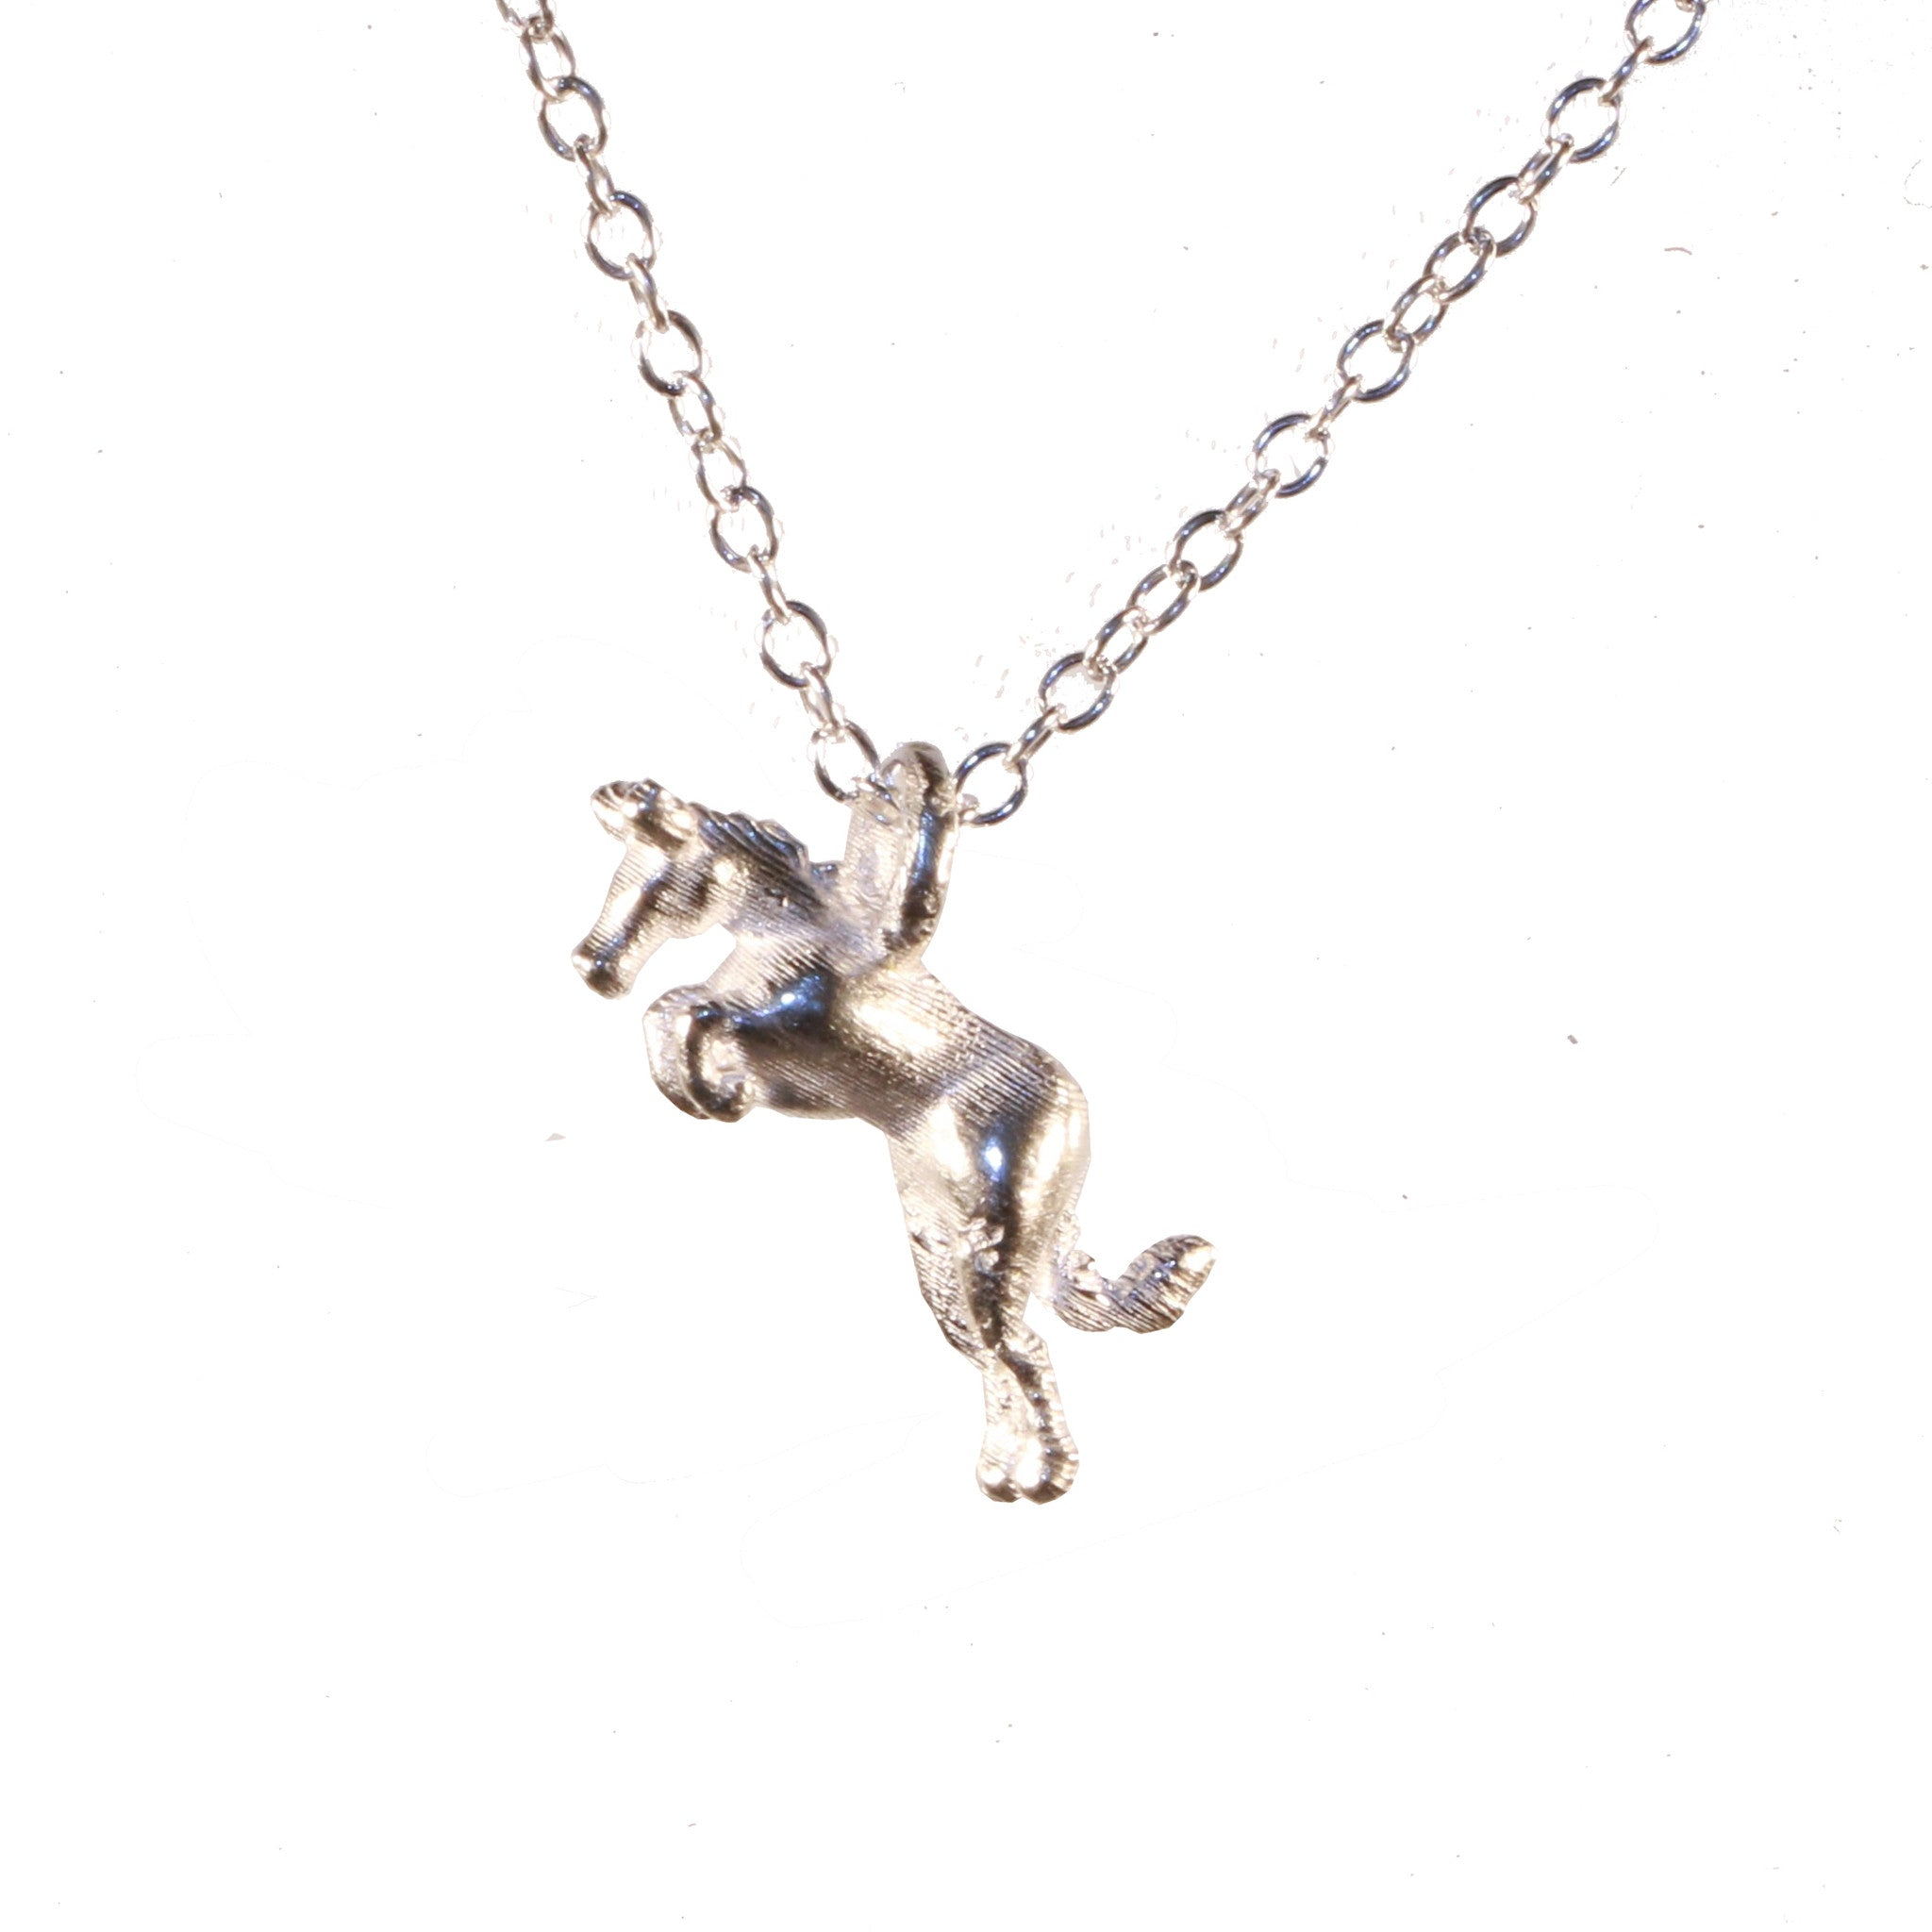 from necklace women no running men silver short item new shipping necklaces minimum jewelry in tone pendant vintage horse free